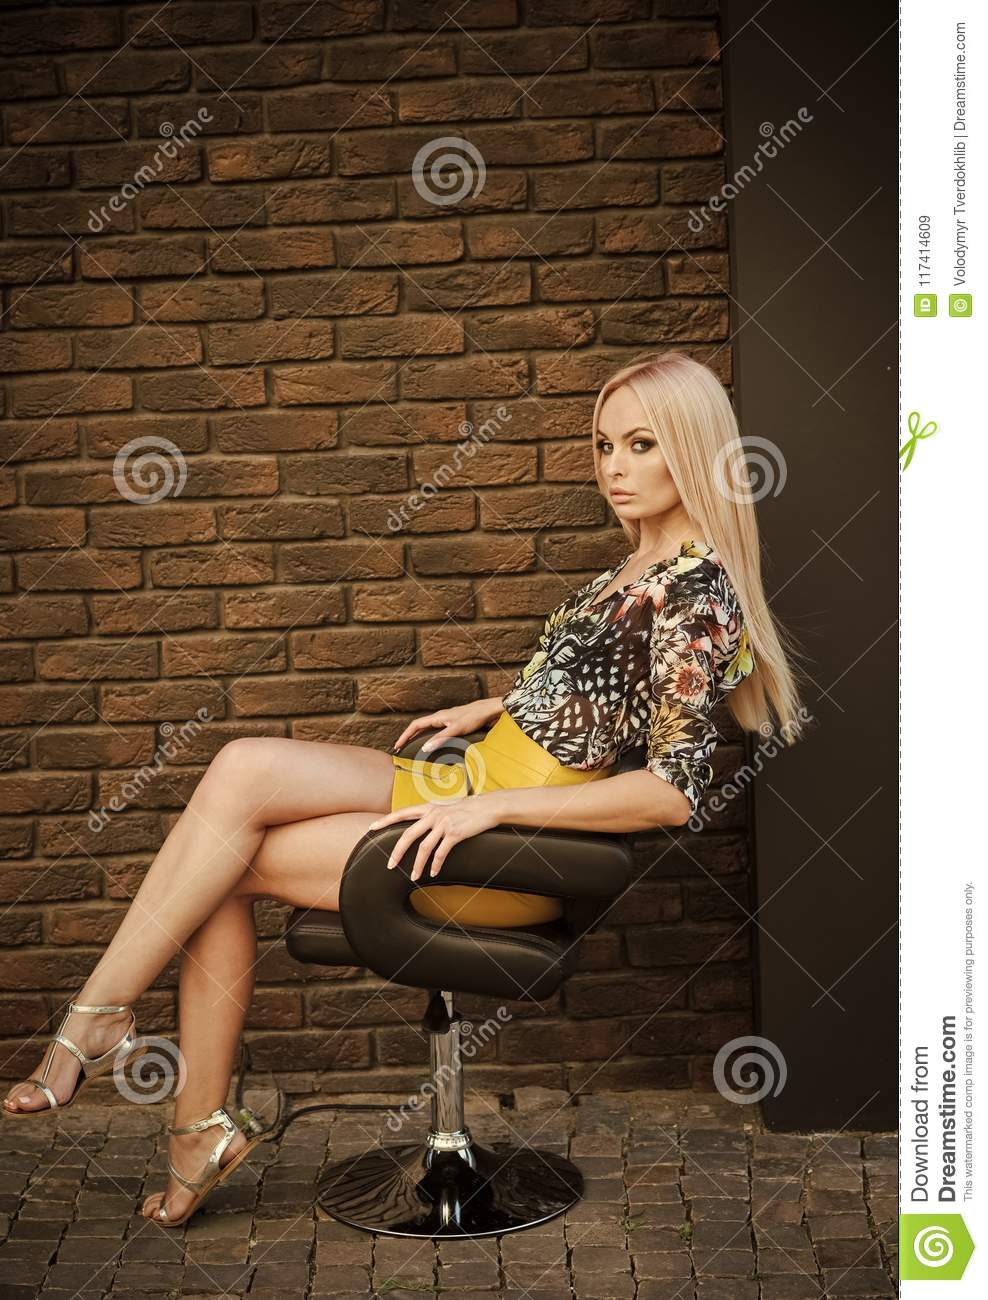 Fashion model in fashionable clothes sit in armchair. woman has her style, vogue. Woman with long blond hair and